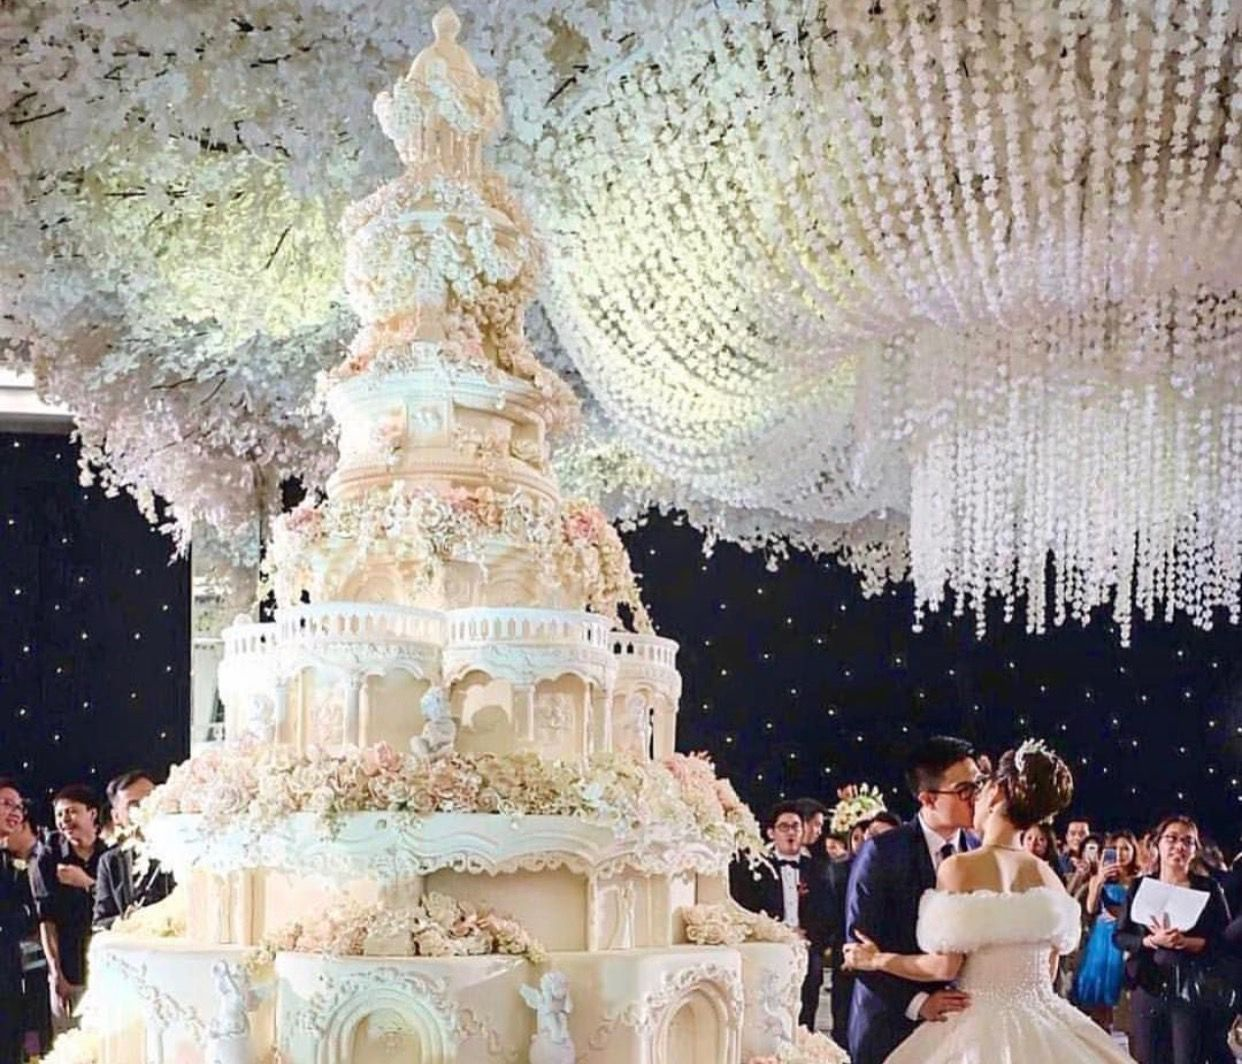 Largest wedding cake ever made